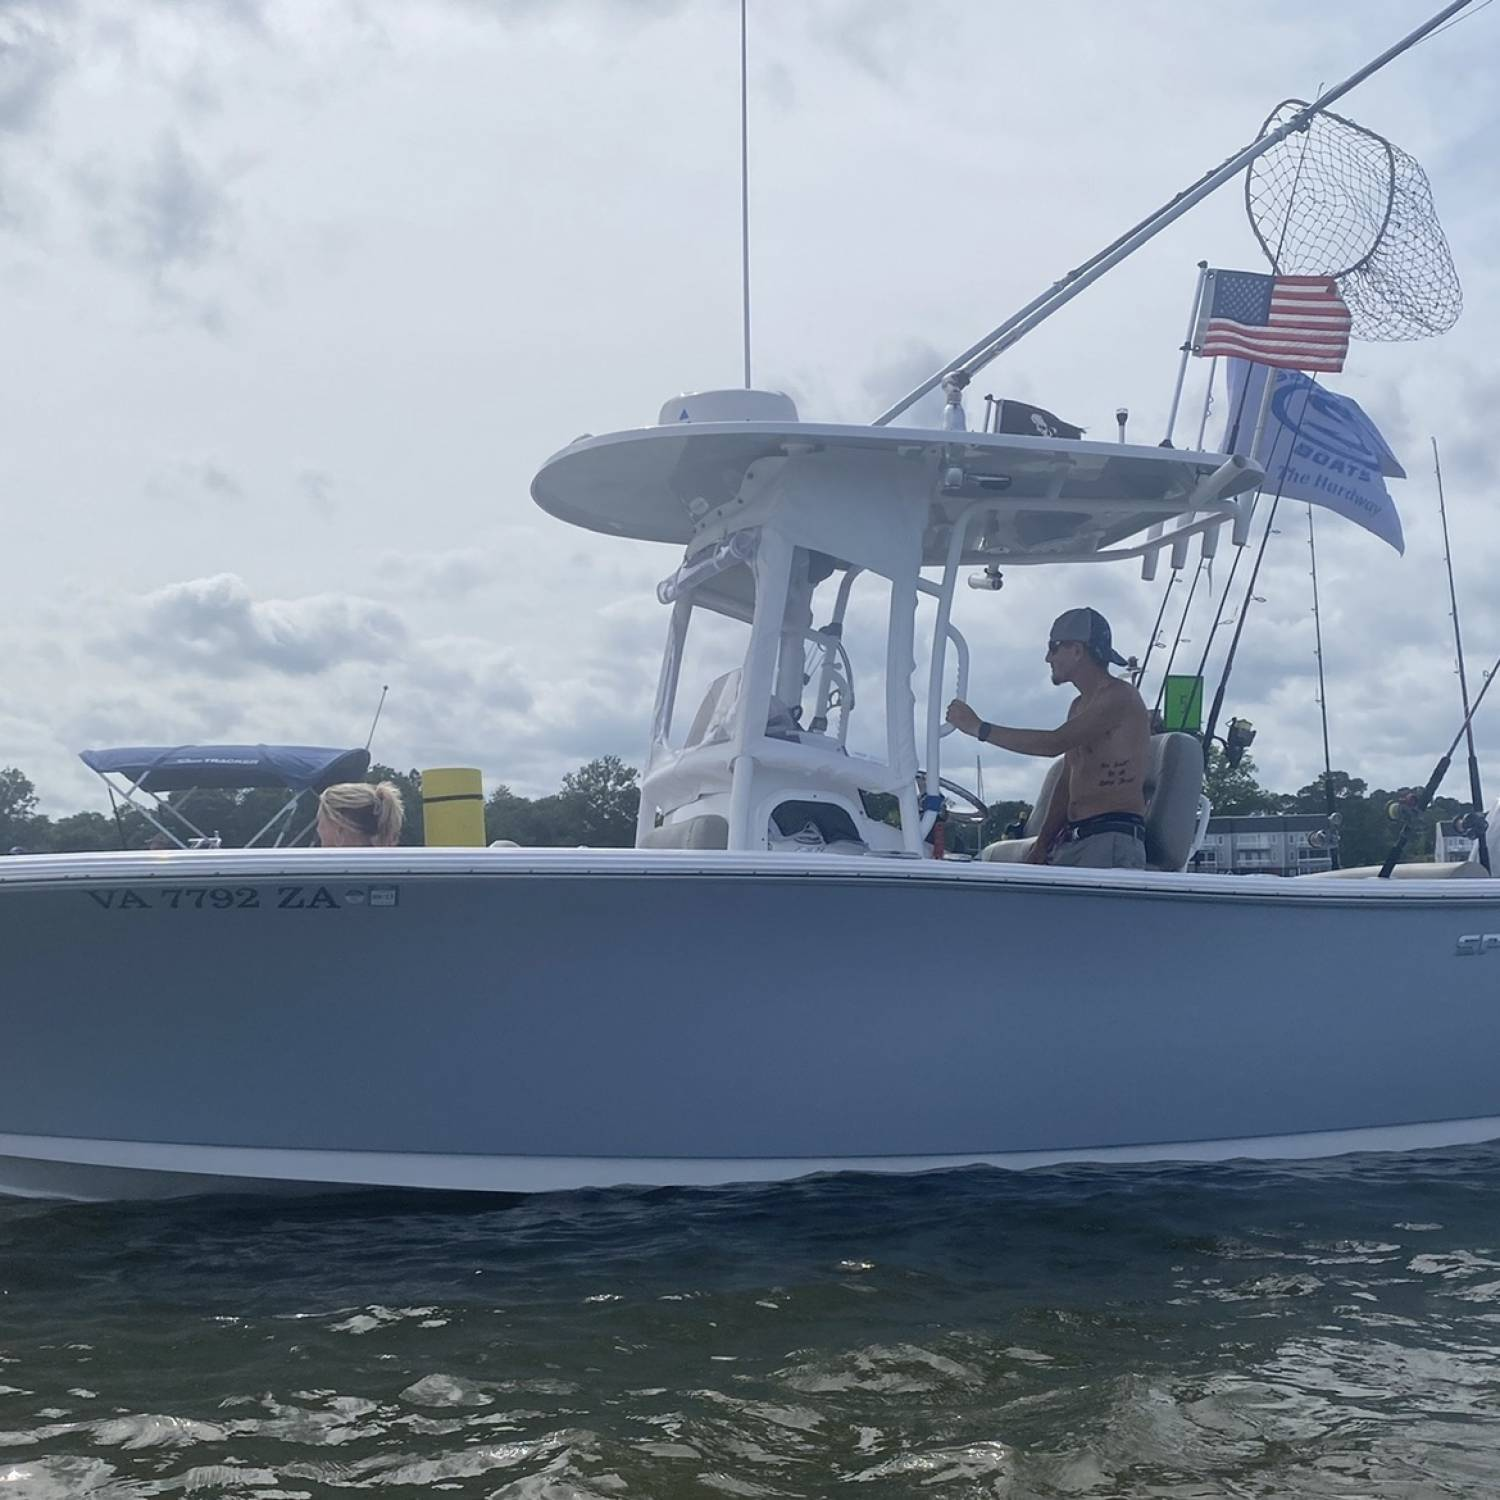 Title: 4th of July - On board their Sportsman Open 232 Center Console - Location: Urbanna VA. Participating in the Photo Contest #SportsmanAugust2021